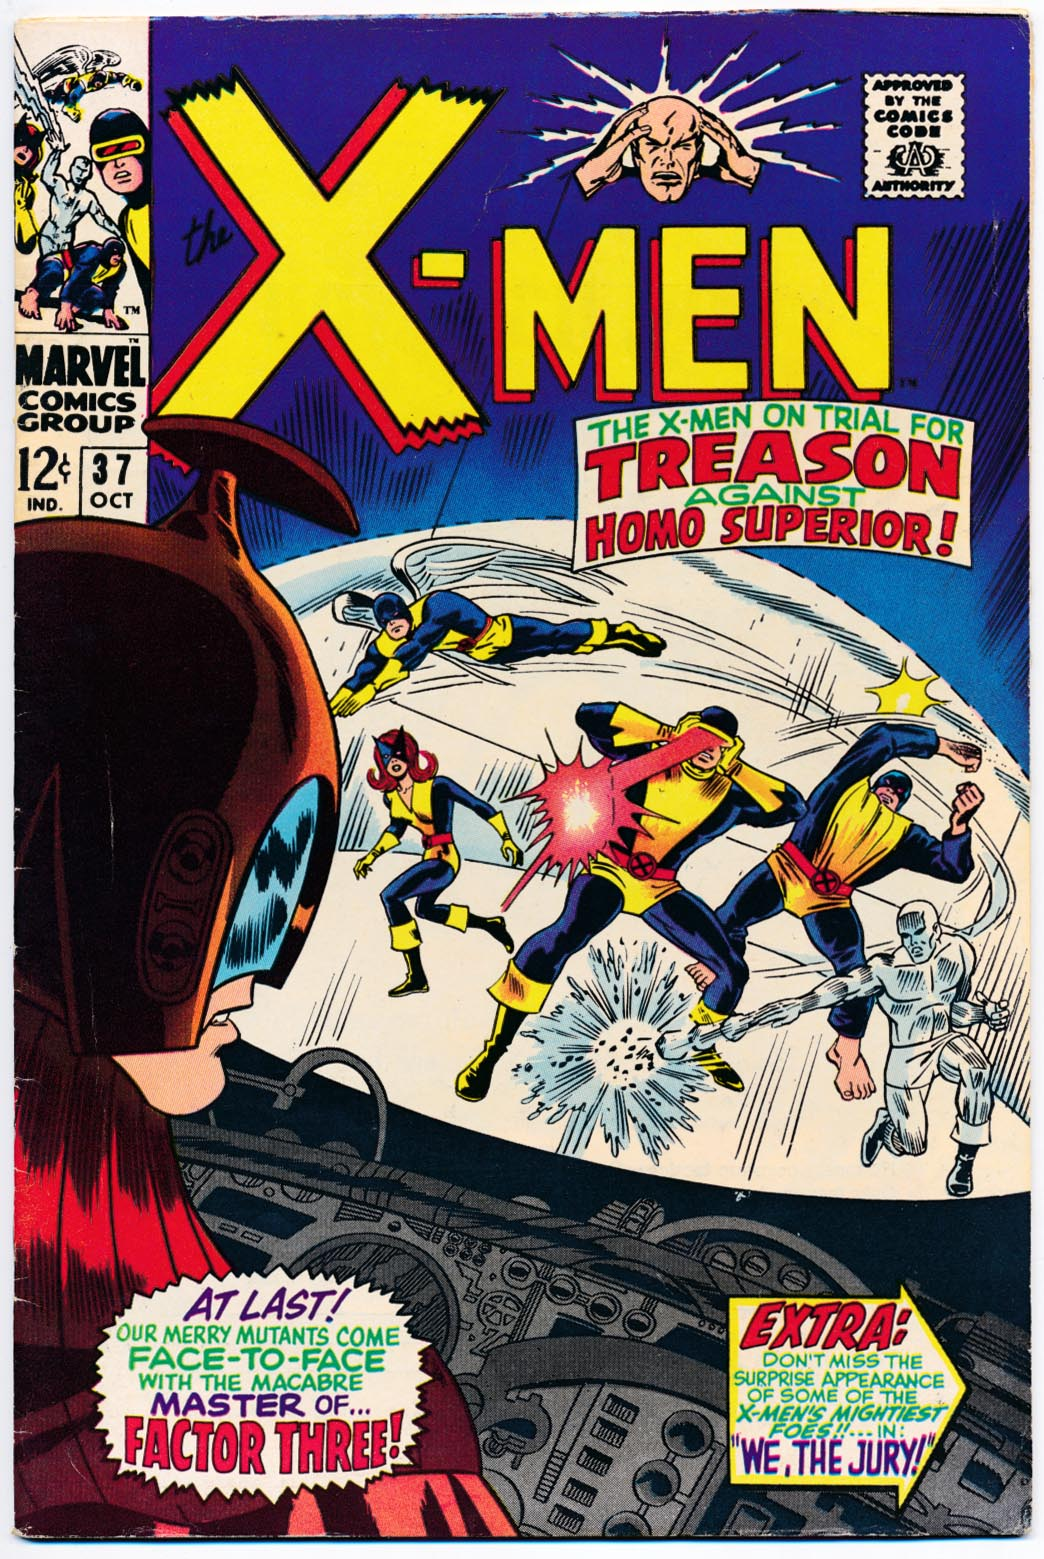 X-Men vol 1 - 37 -VF